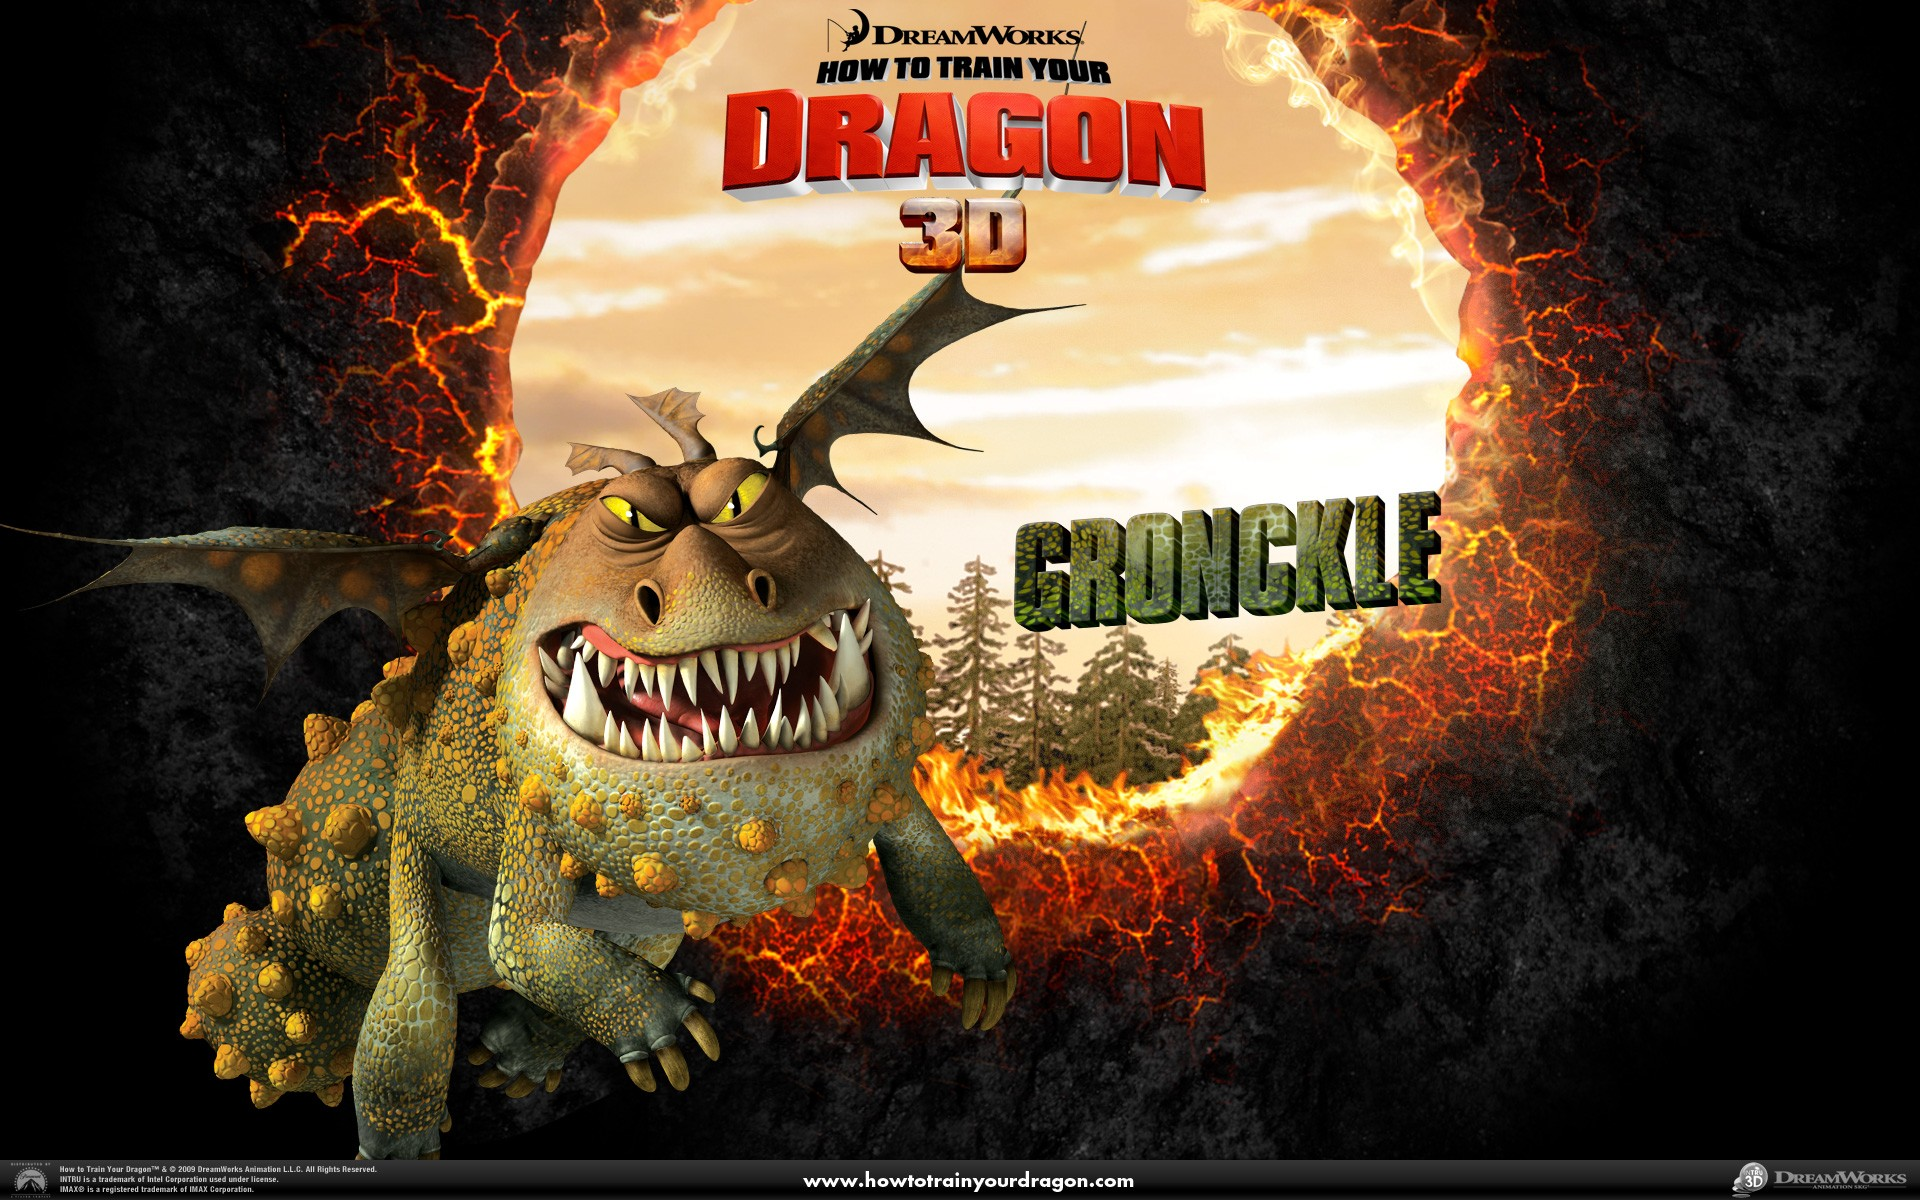 Un wallpaper ufficiale del drago Gronkio del film Dragon Trainer